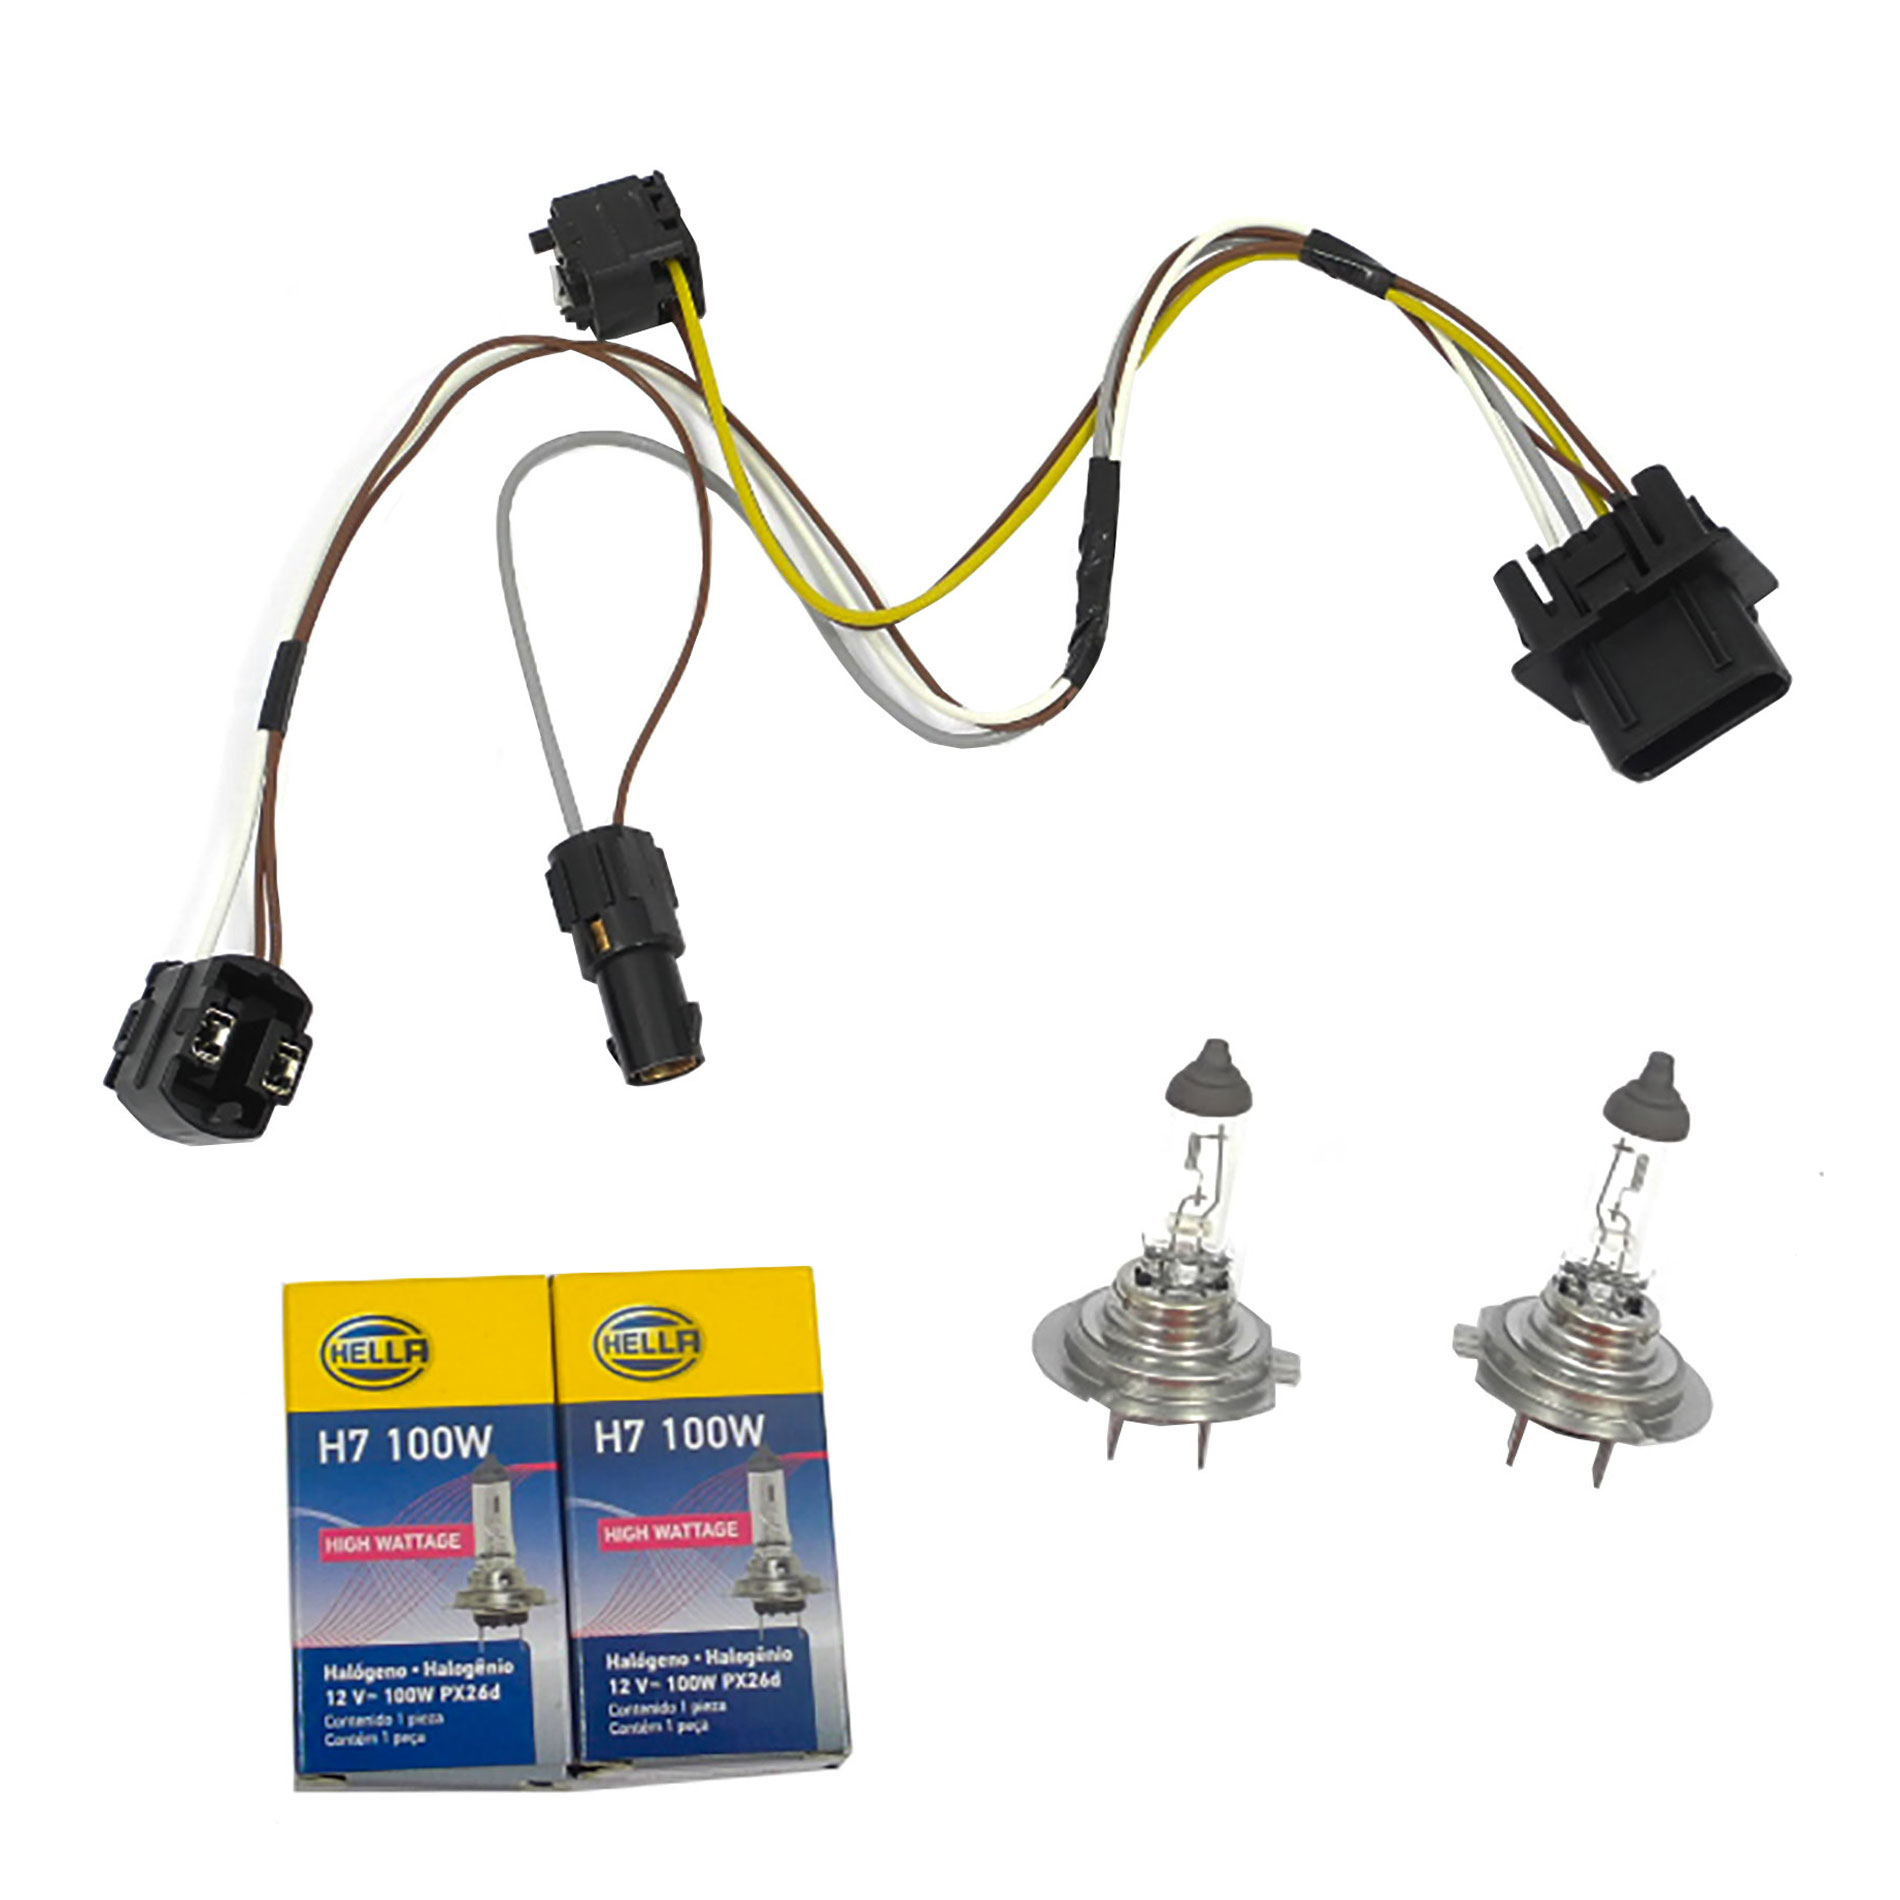 hight resolution of details about for benz e430 e500 e55 l r headlight wiring harness and h7 100w headlight bulb